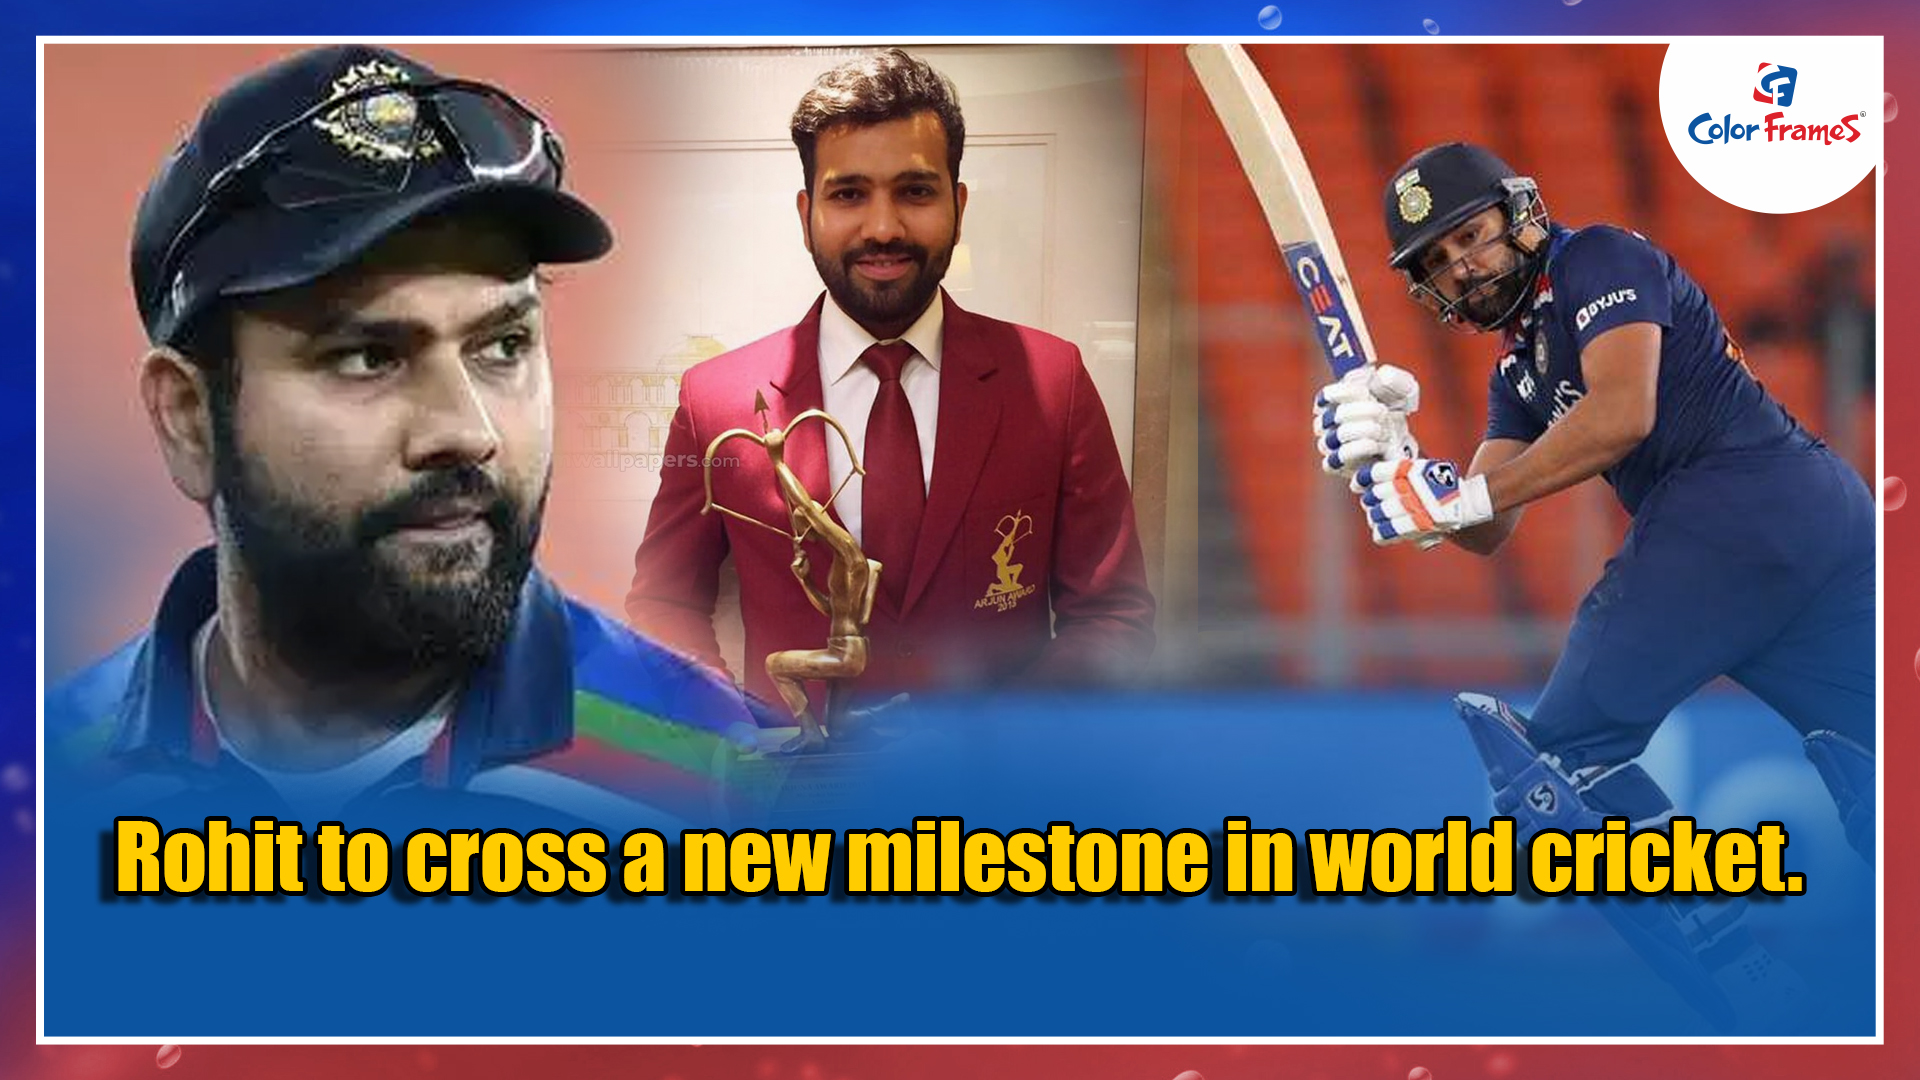 Rohit to cross a new milestone in world cricket.